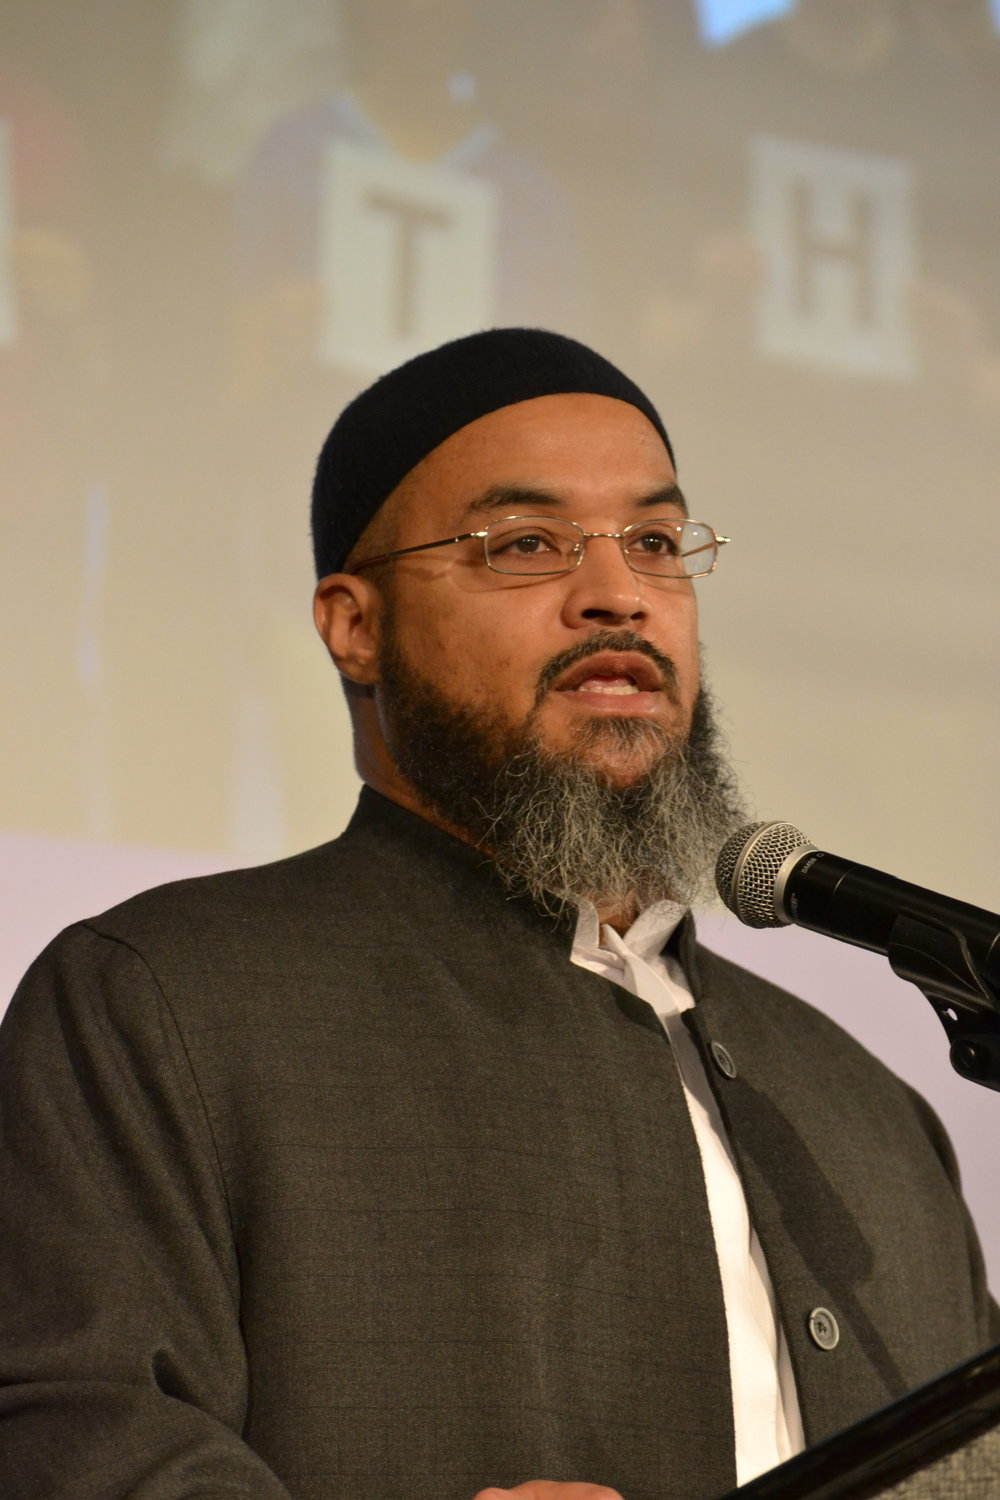 Imam Khalid Herrington